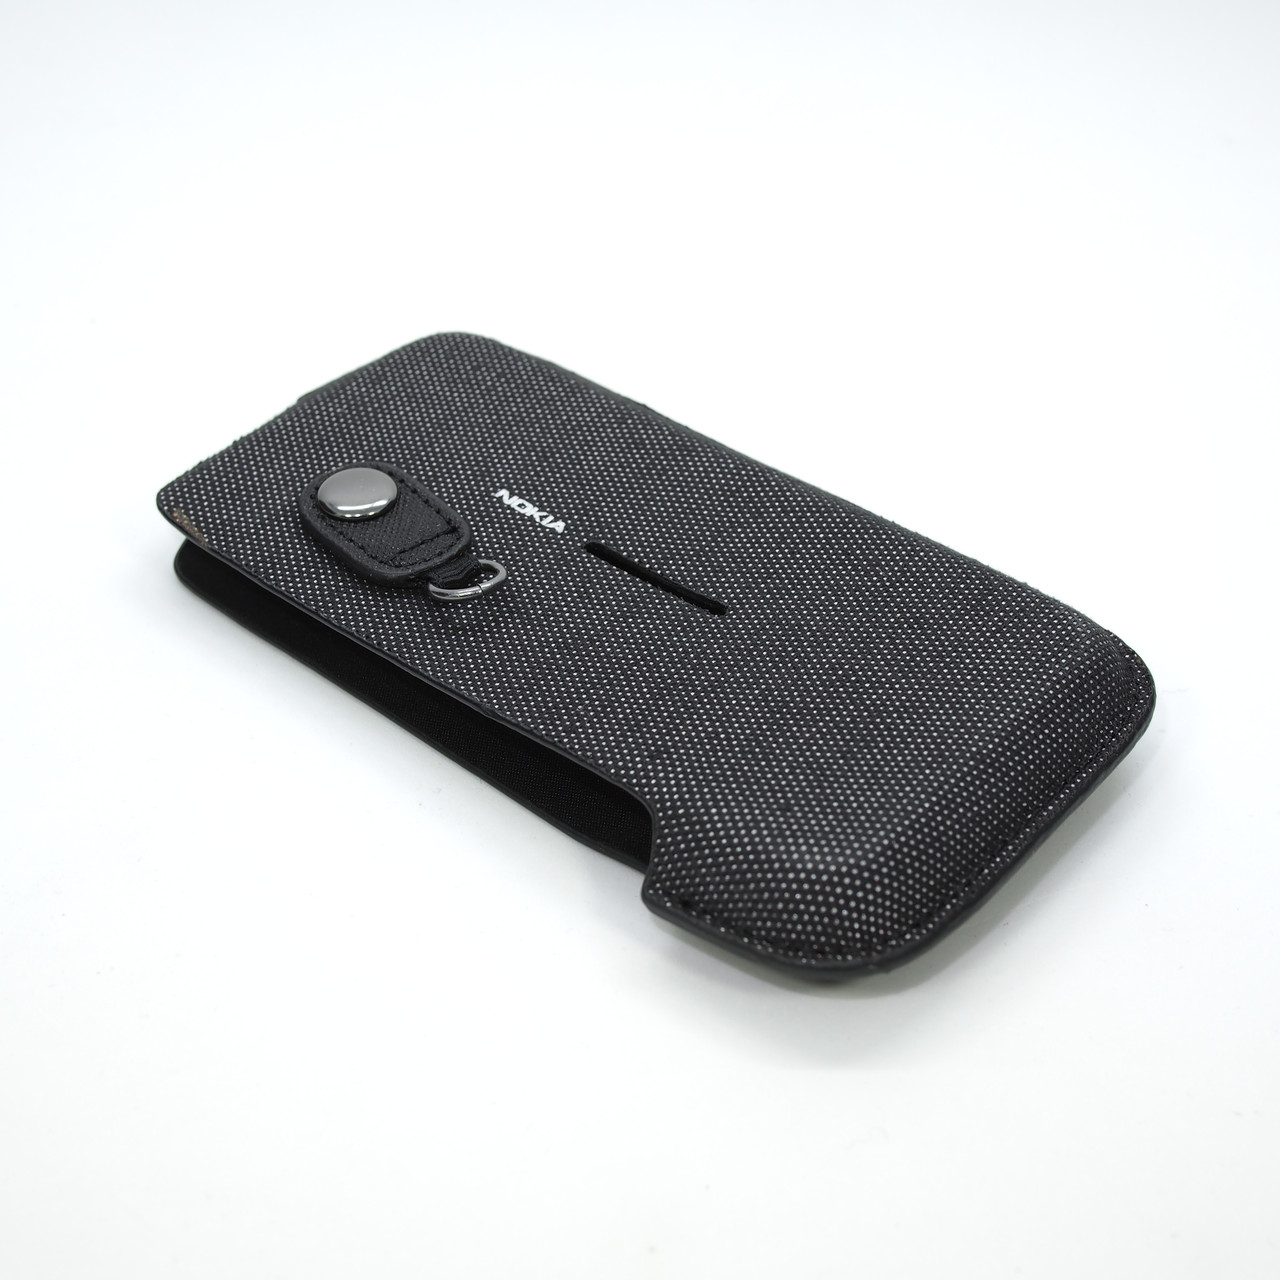 Nokia CP-506 C7 Protective Pouch black